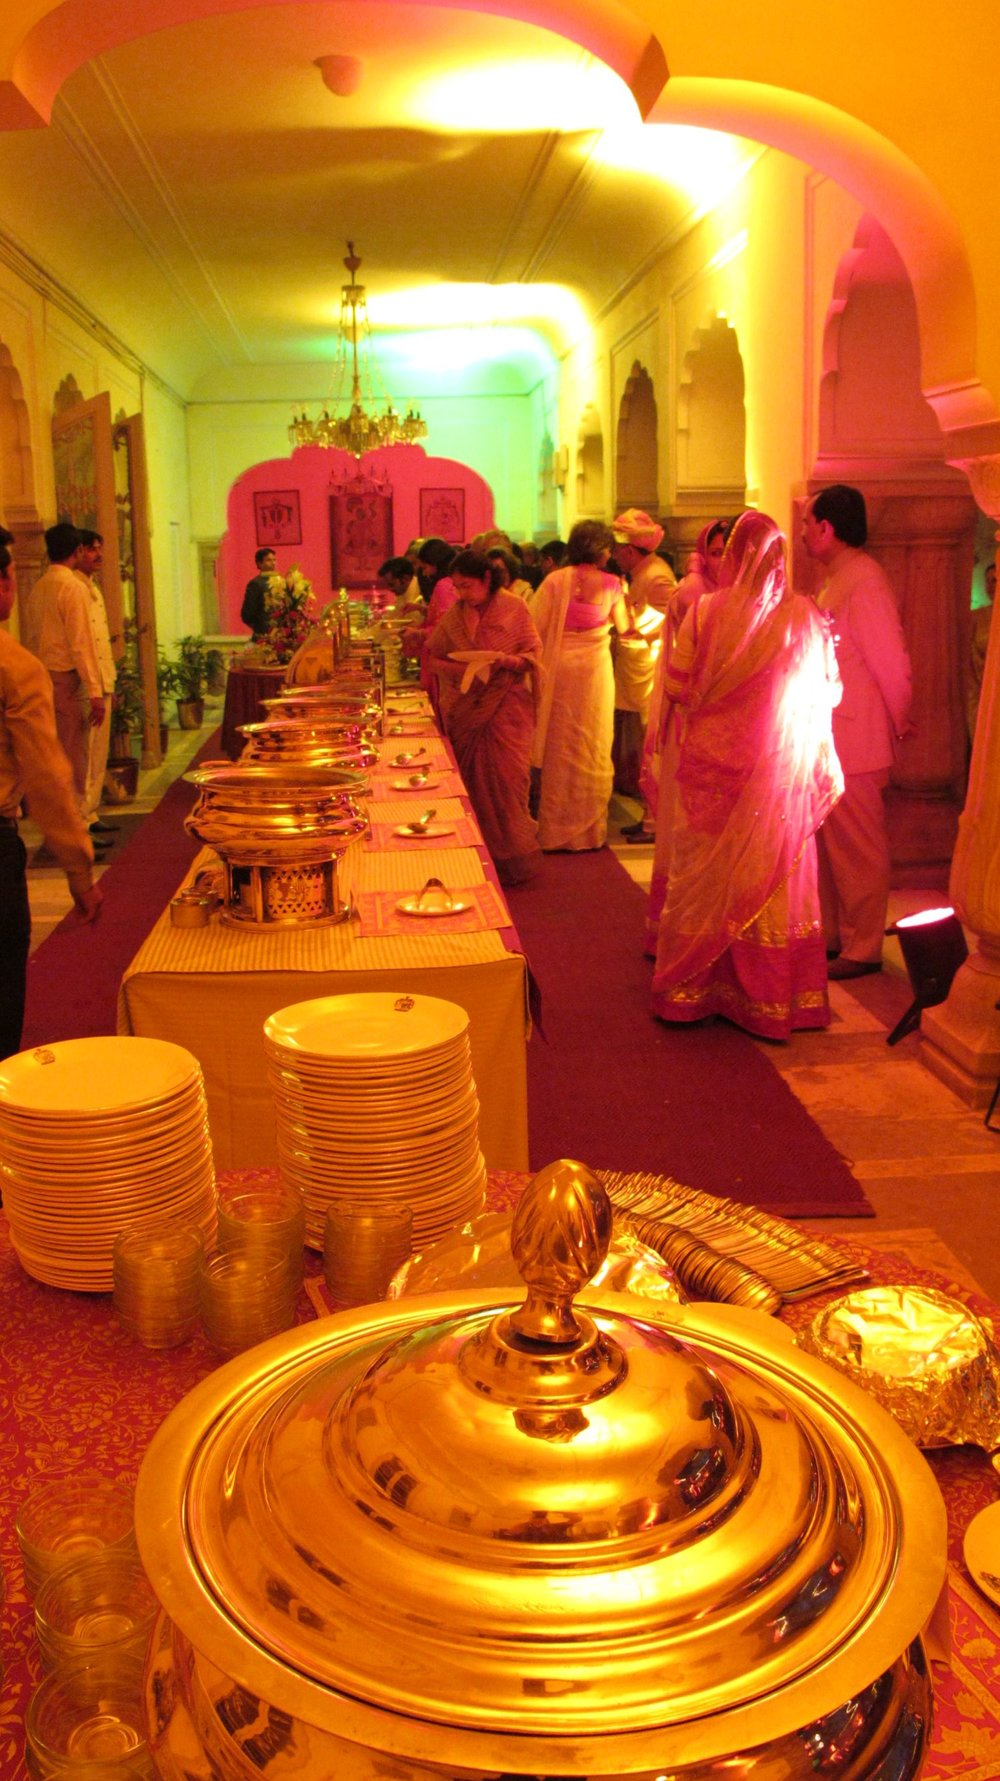 City palace of Jaipur | Royal family | Private party | Diner with silver dishes | ©sandrine cohen